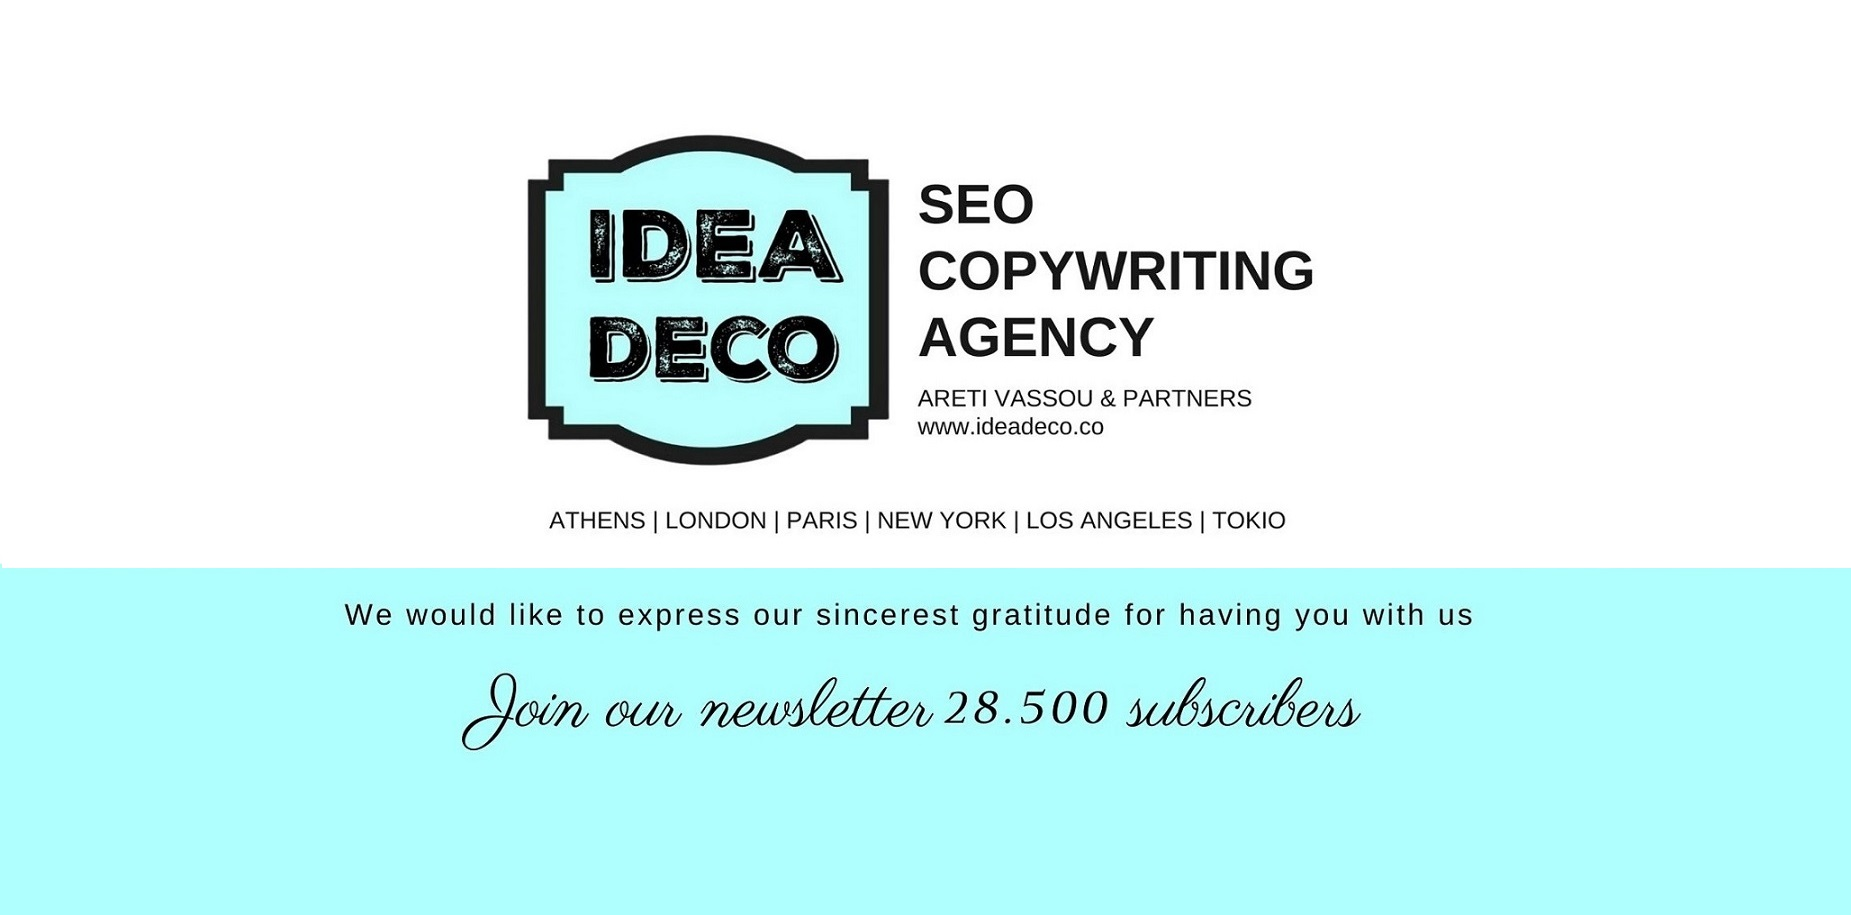 Join IDEADECO 28.500 newsletter subscribers